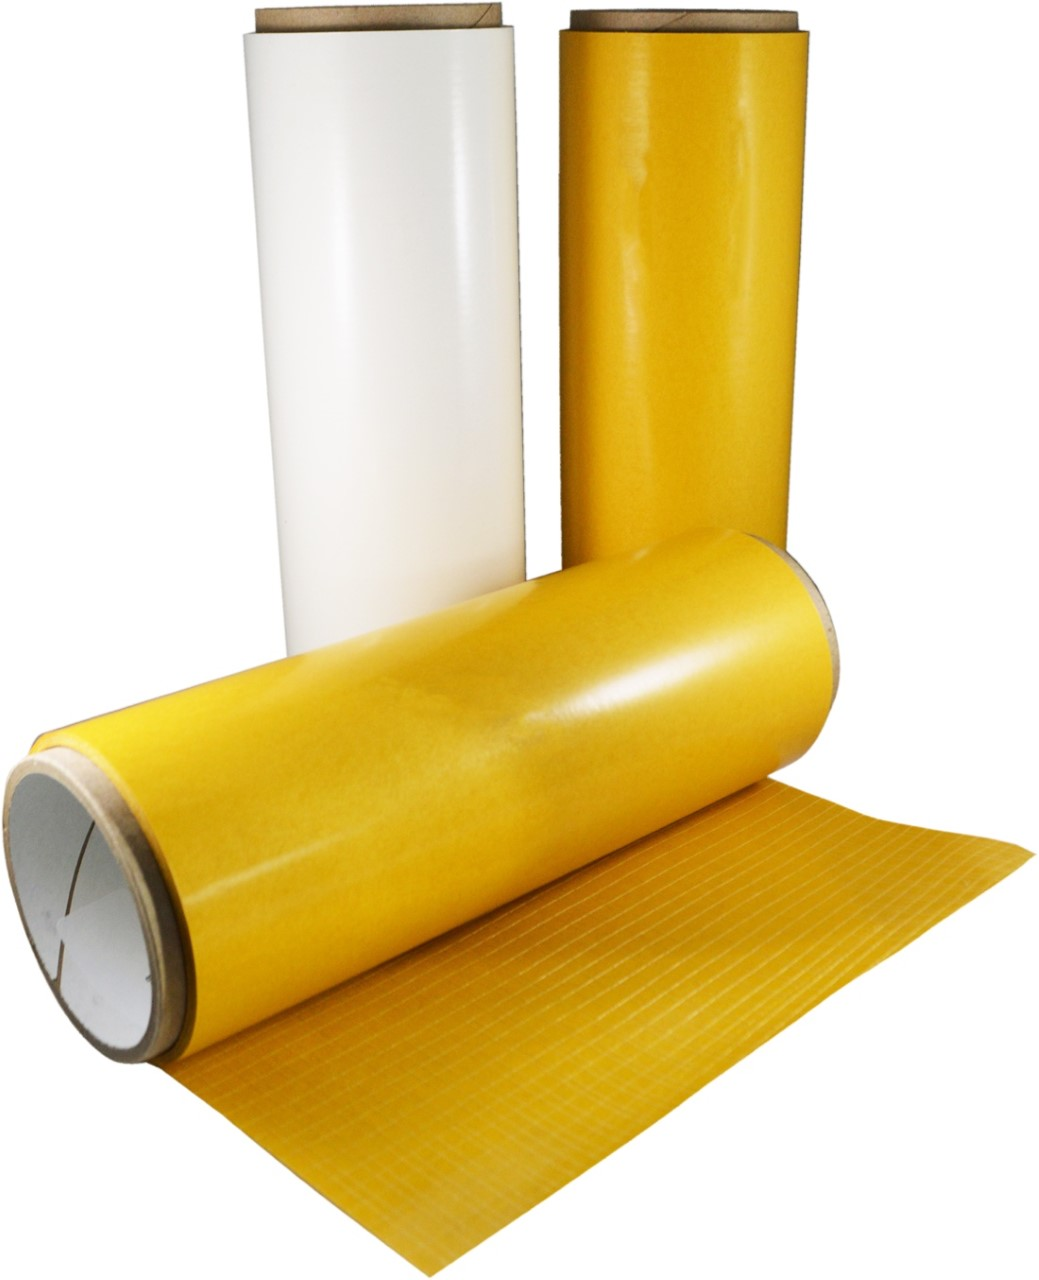 Solvent free low VOC Tapes